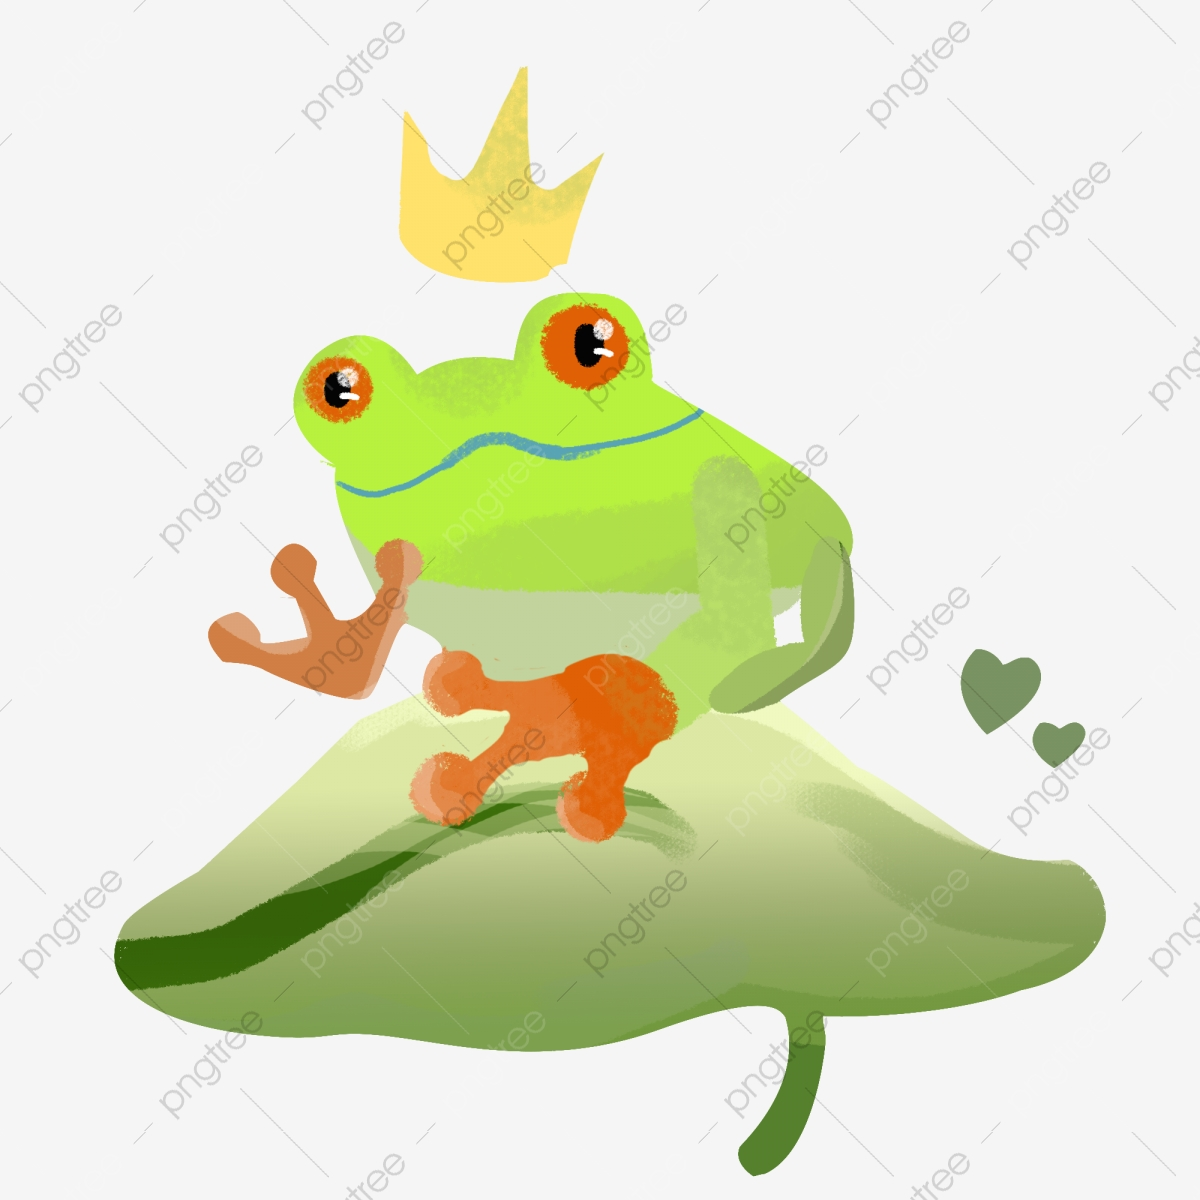 Lotus Leaf Frog Cartoon Illustration Frog Plant Crown Png Transparent Clipart Image And Psd File For Free Download Head cute little elephant bawith crown leafs vector. https pngtree com freepng lotus leaf frog cartoon illustration 4608581 html